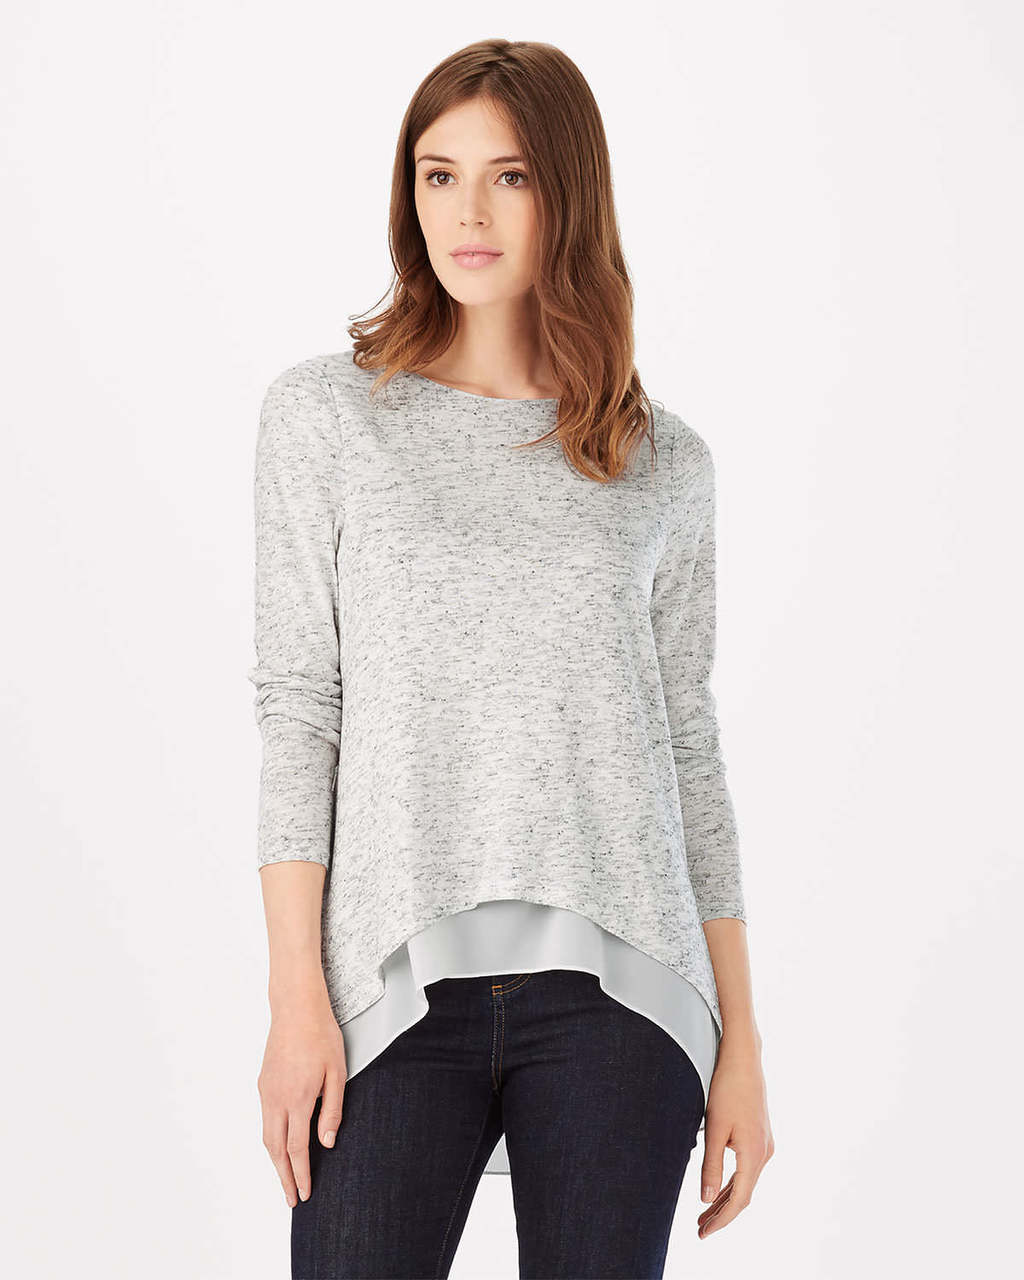 Zannie Space Dye Top - neckline: round neck; predominant colour: light grey; occasions: casual, creative work; length: standard; style: top; fibres: silk - mix; fit: loose; back detail: longer hem at back than at front; sleeve length: 3/4 length; sleeve style: standard; texture group: linen; pattern type: fabric; pattern: patterned/print; pattern size: big & busy (top); season: s/s 2016; wardrobe: highlight